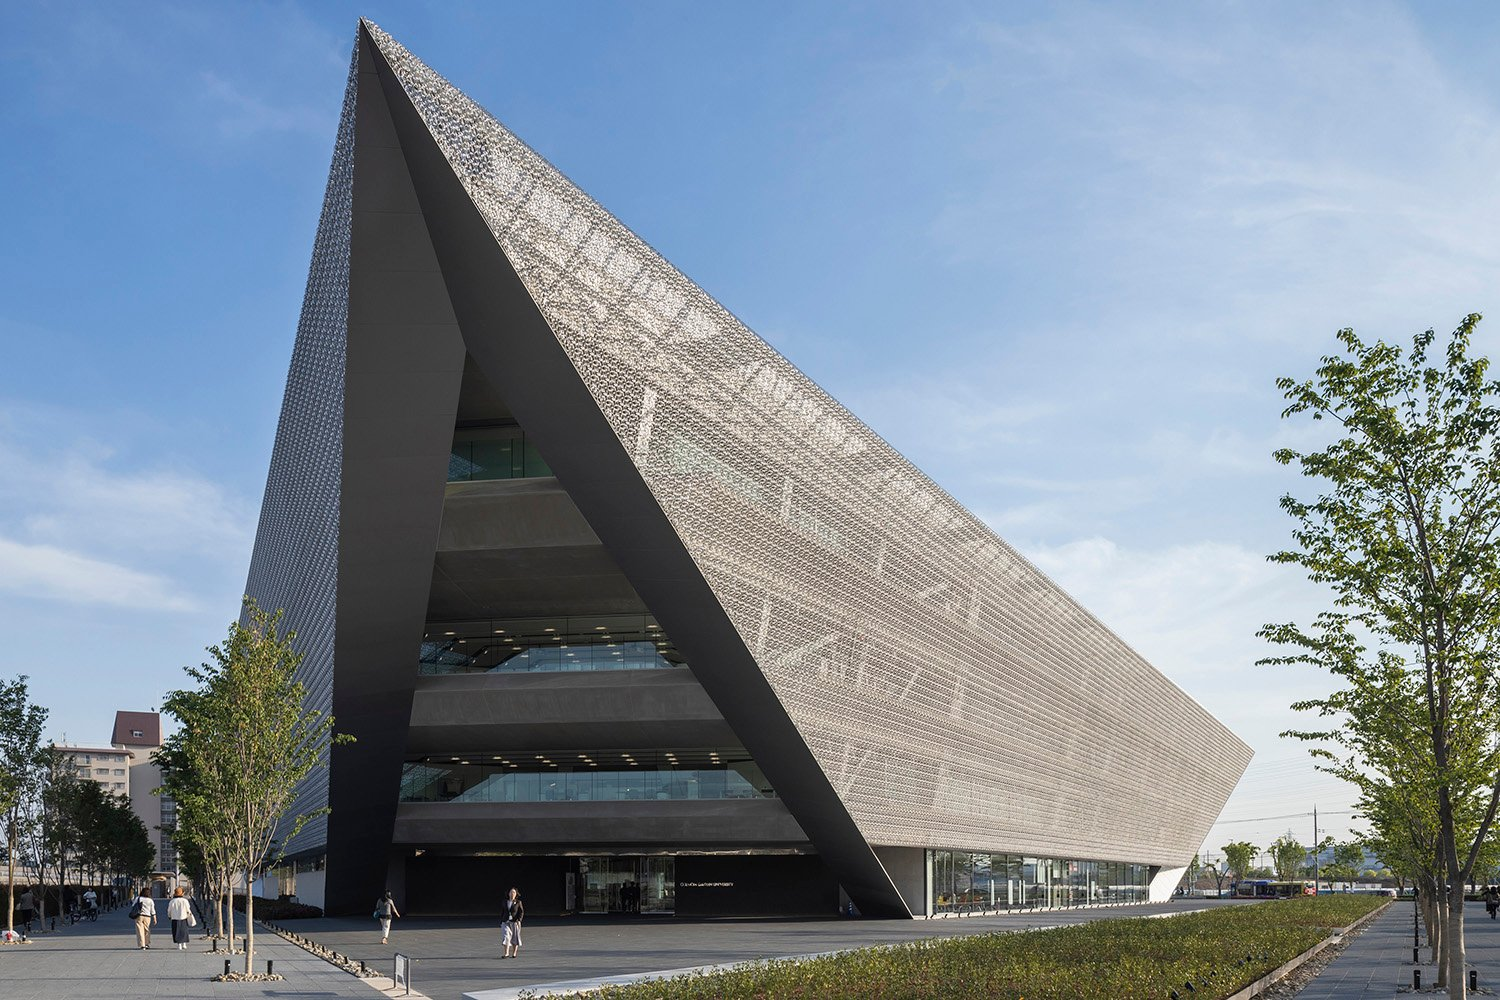 Daytime View. Inverted triangular pyramid covered with stainless-steel eco-screen is open public Shinkenchiku-sha